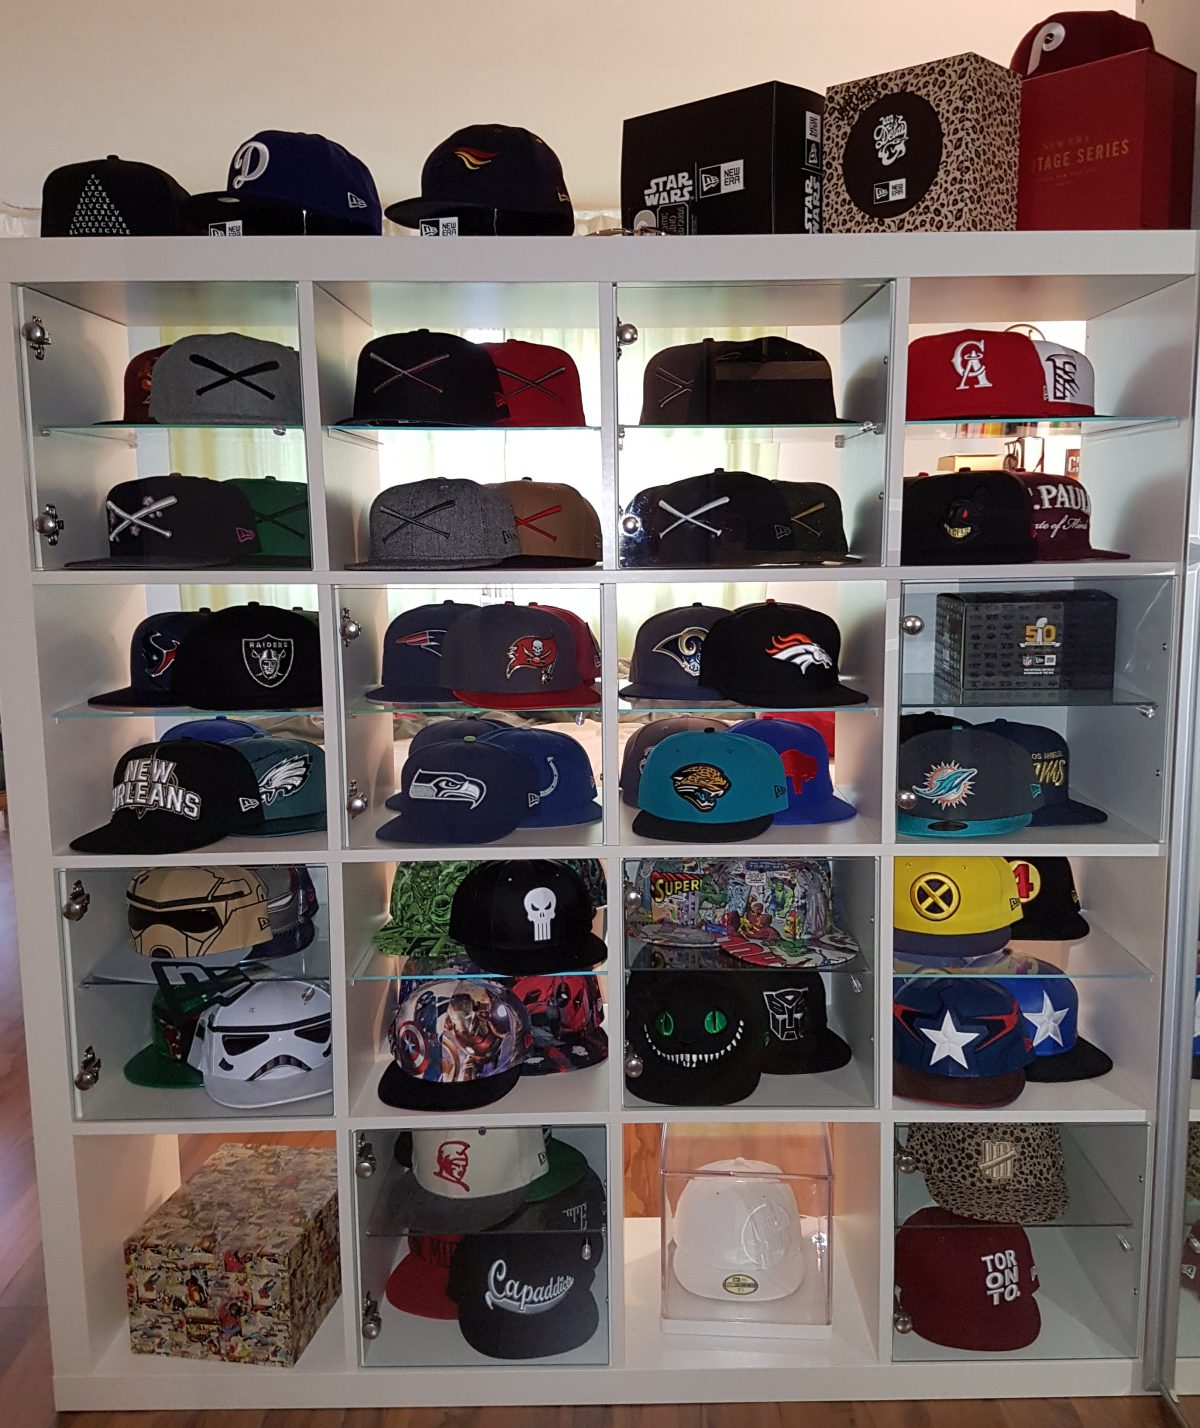 new-era-cap-collection-capaddicts-stef-who-is-who-8